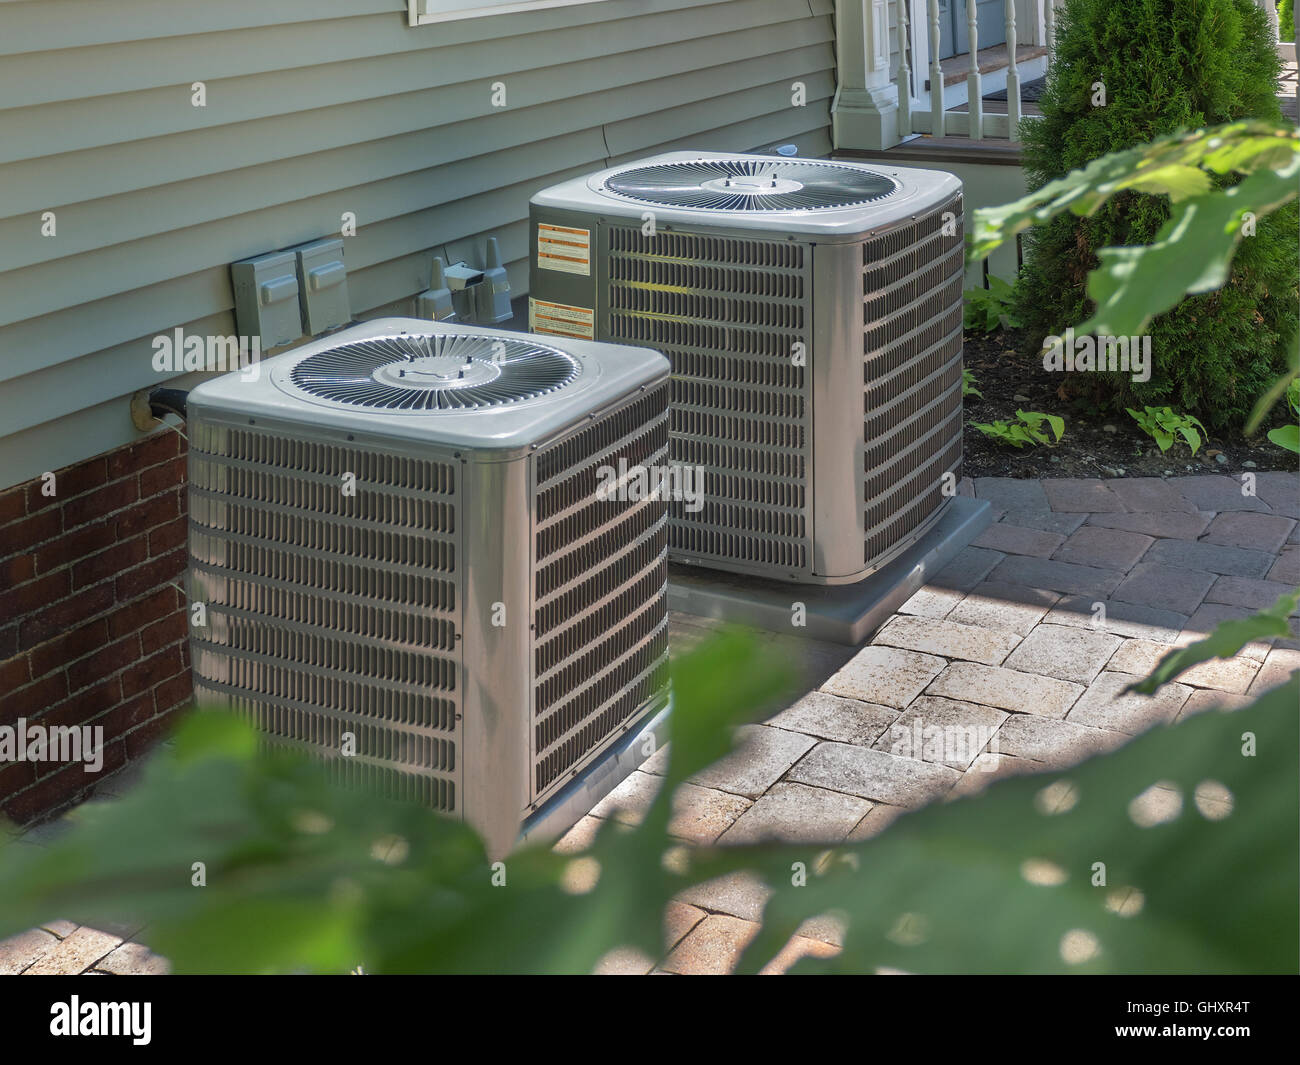 Outdoor air conditioners/heaters in back of housing complex - Stock Image